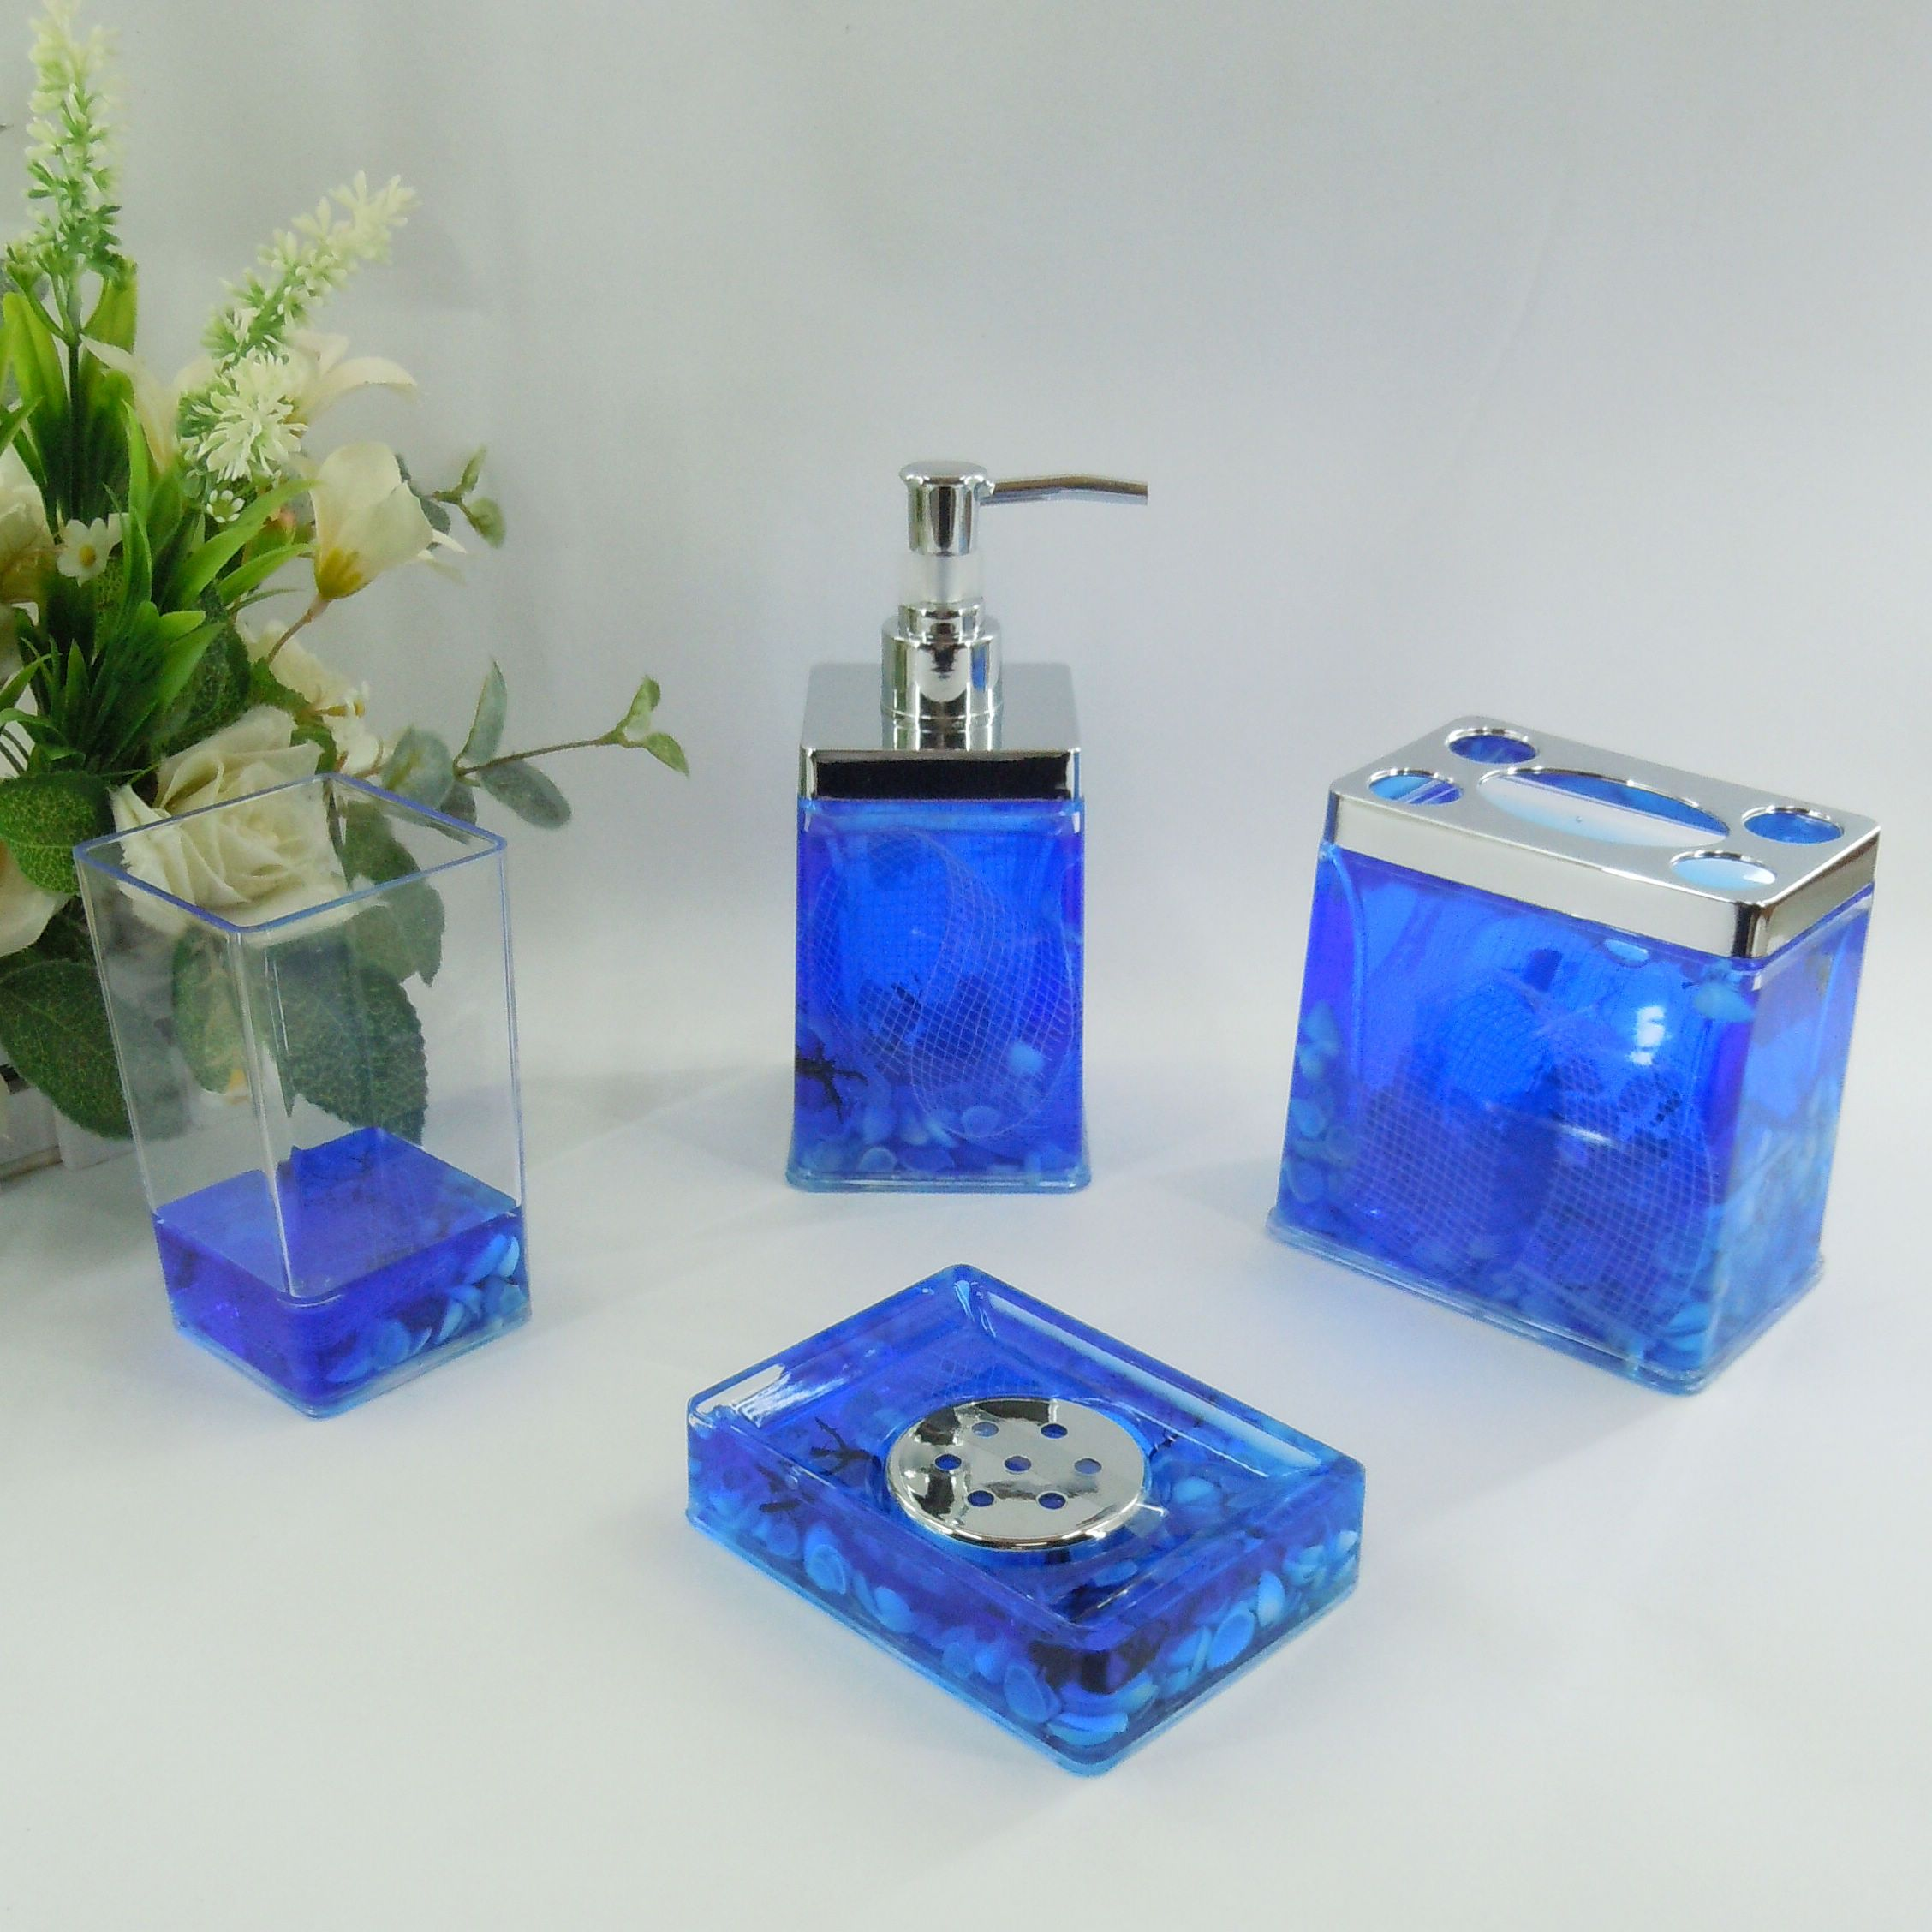 19 99 Blue Sea Conch Acrylic Bath Accessory Sets H4005 Wholesale Faucet